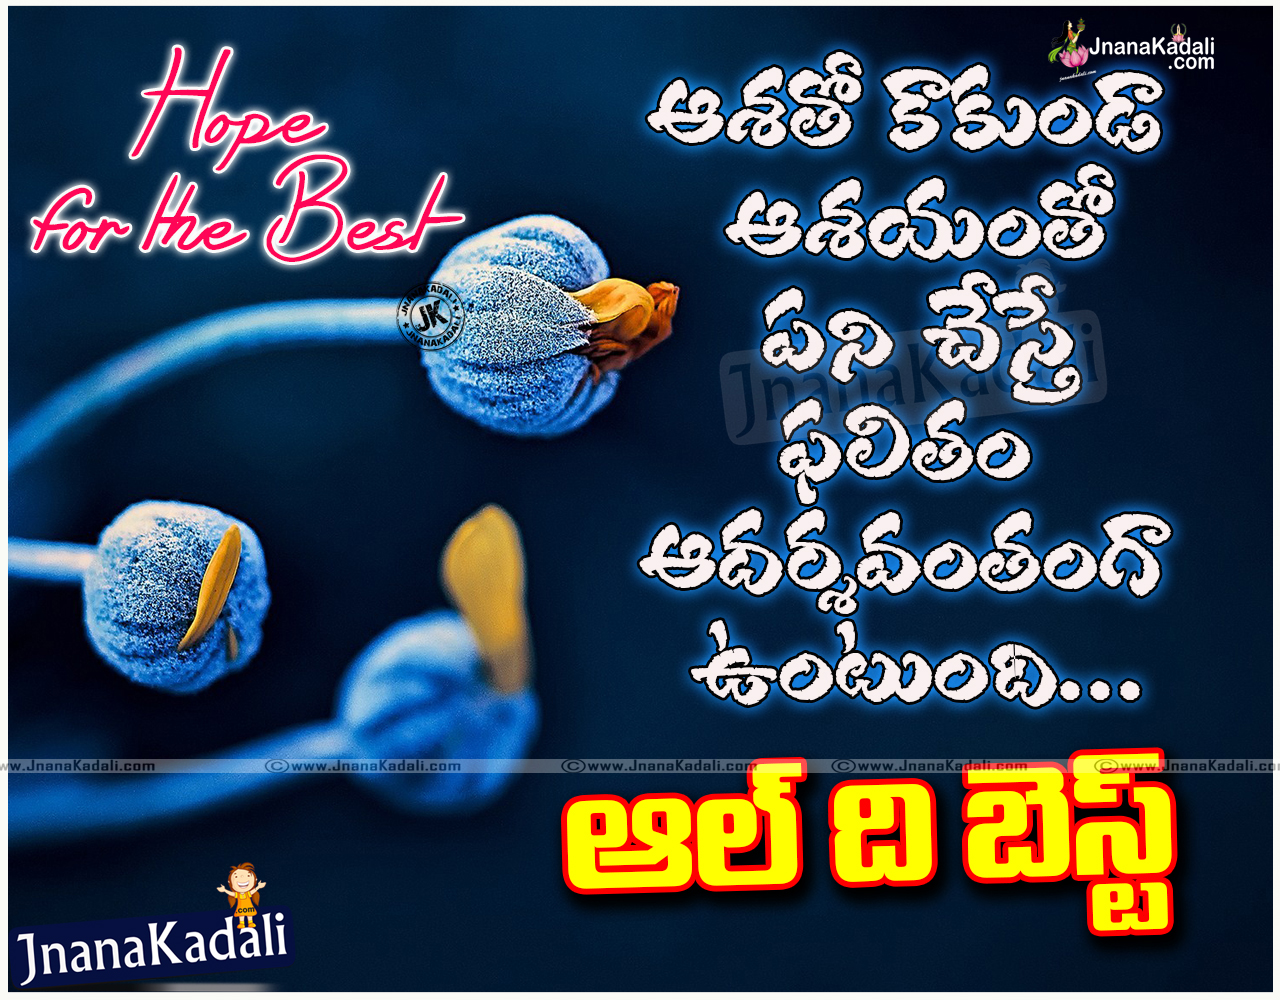 All the best for success inspiring quotes sms messages greetings telugu new all the best inspiring quotes for friend new job all the best messages kristyandbryce Images